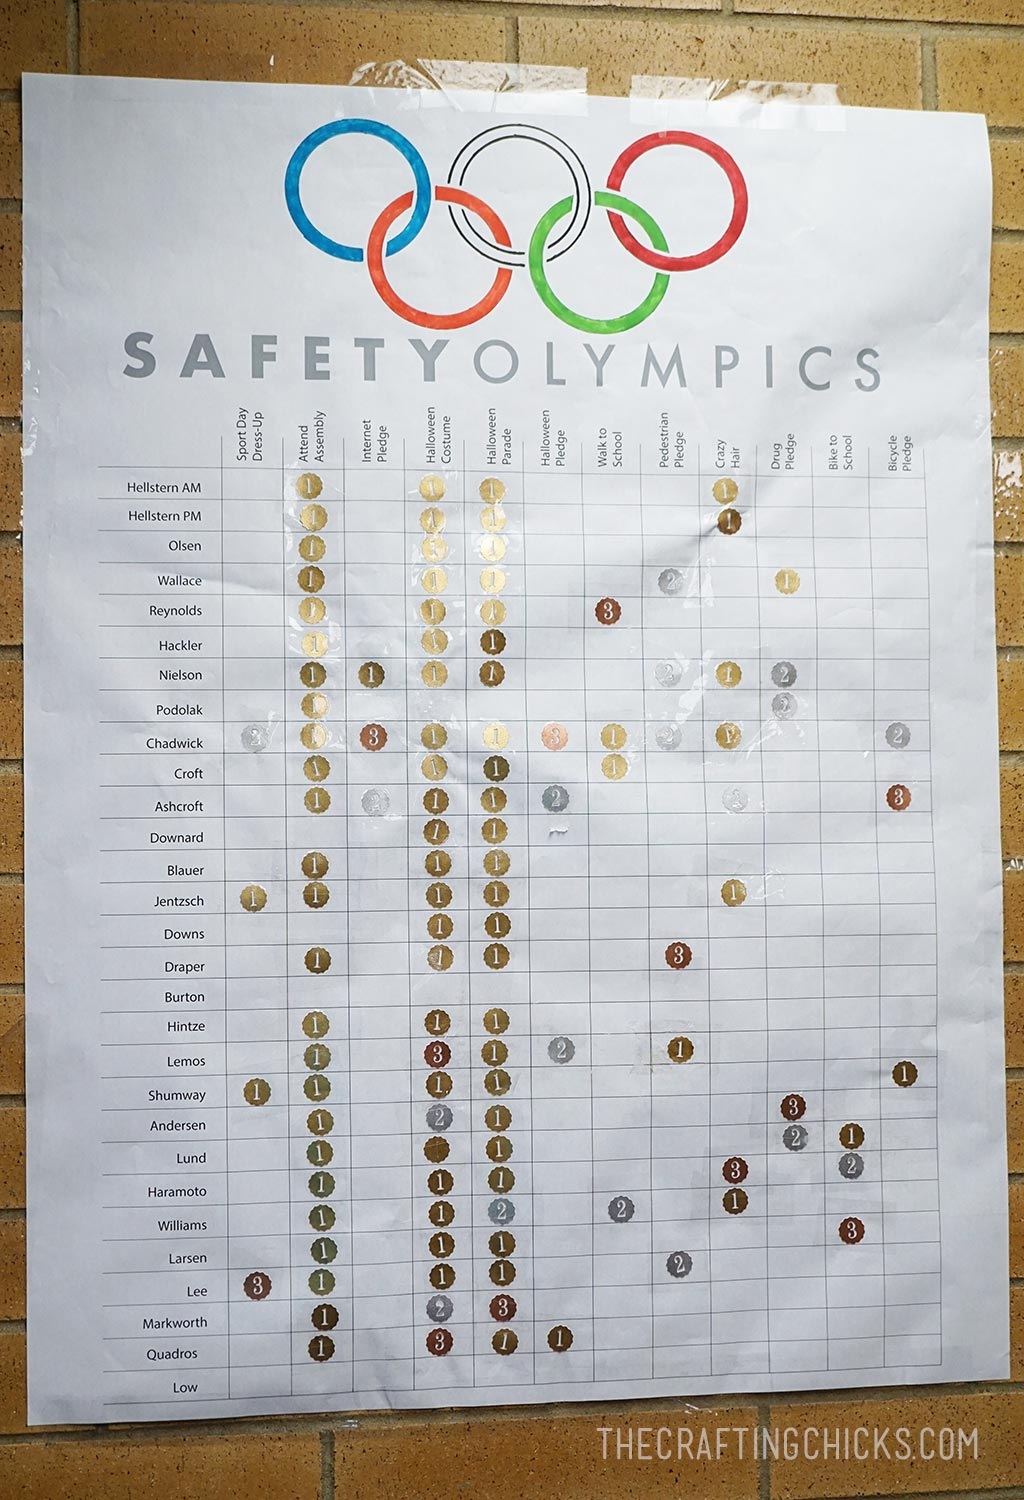 Safety Olympics - Medal Count Chart